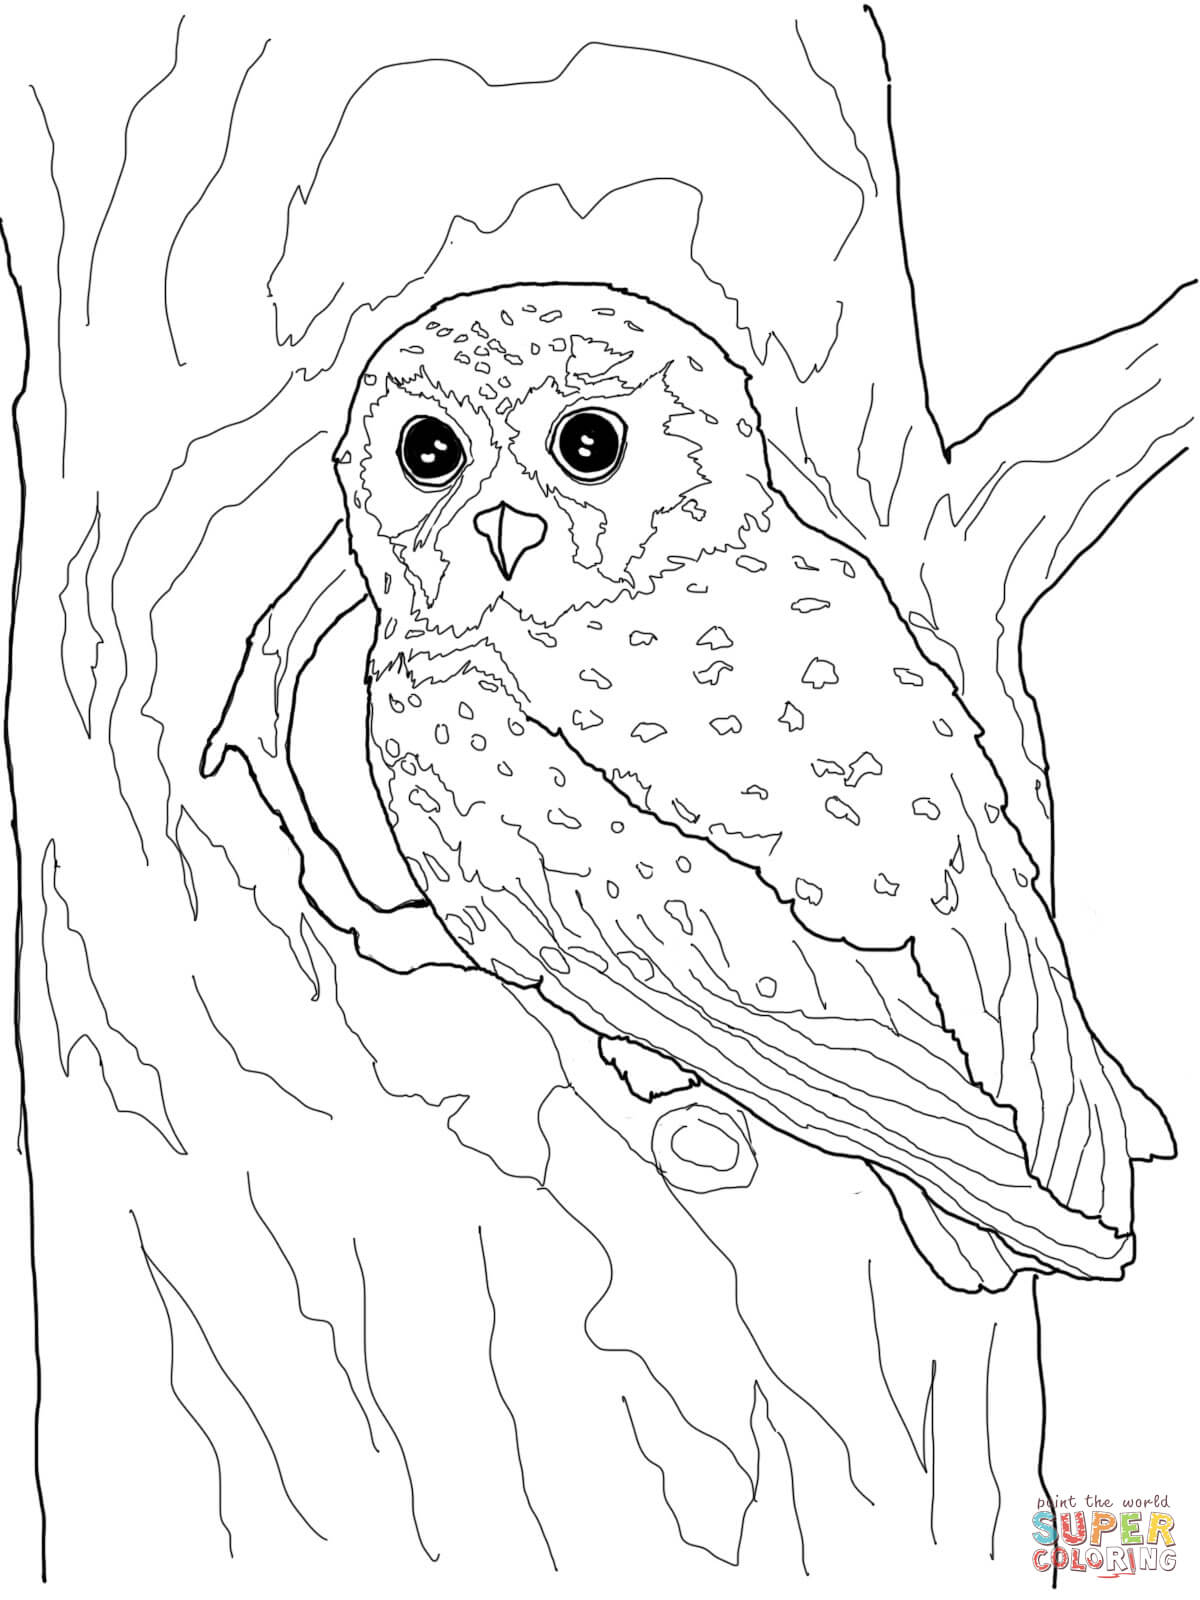 Owls Coloring Pages | Free Coloring Pages - Free Printable Owl Coloring Sheets